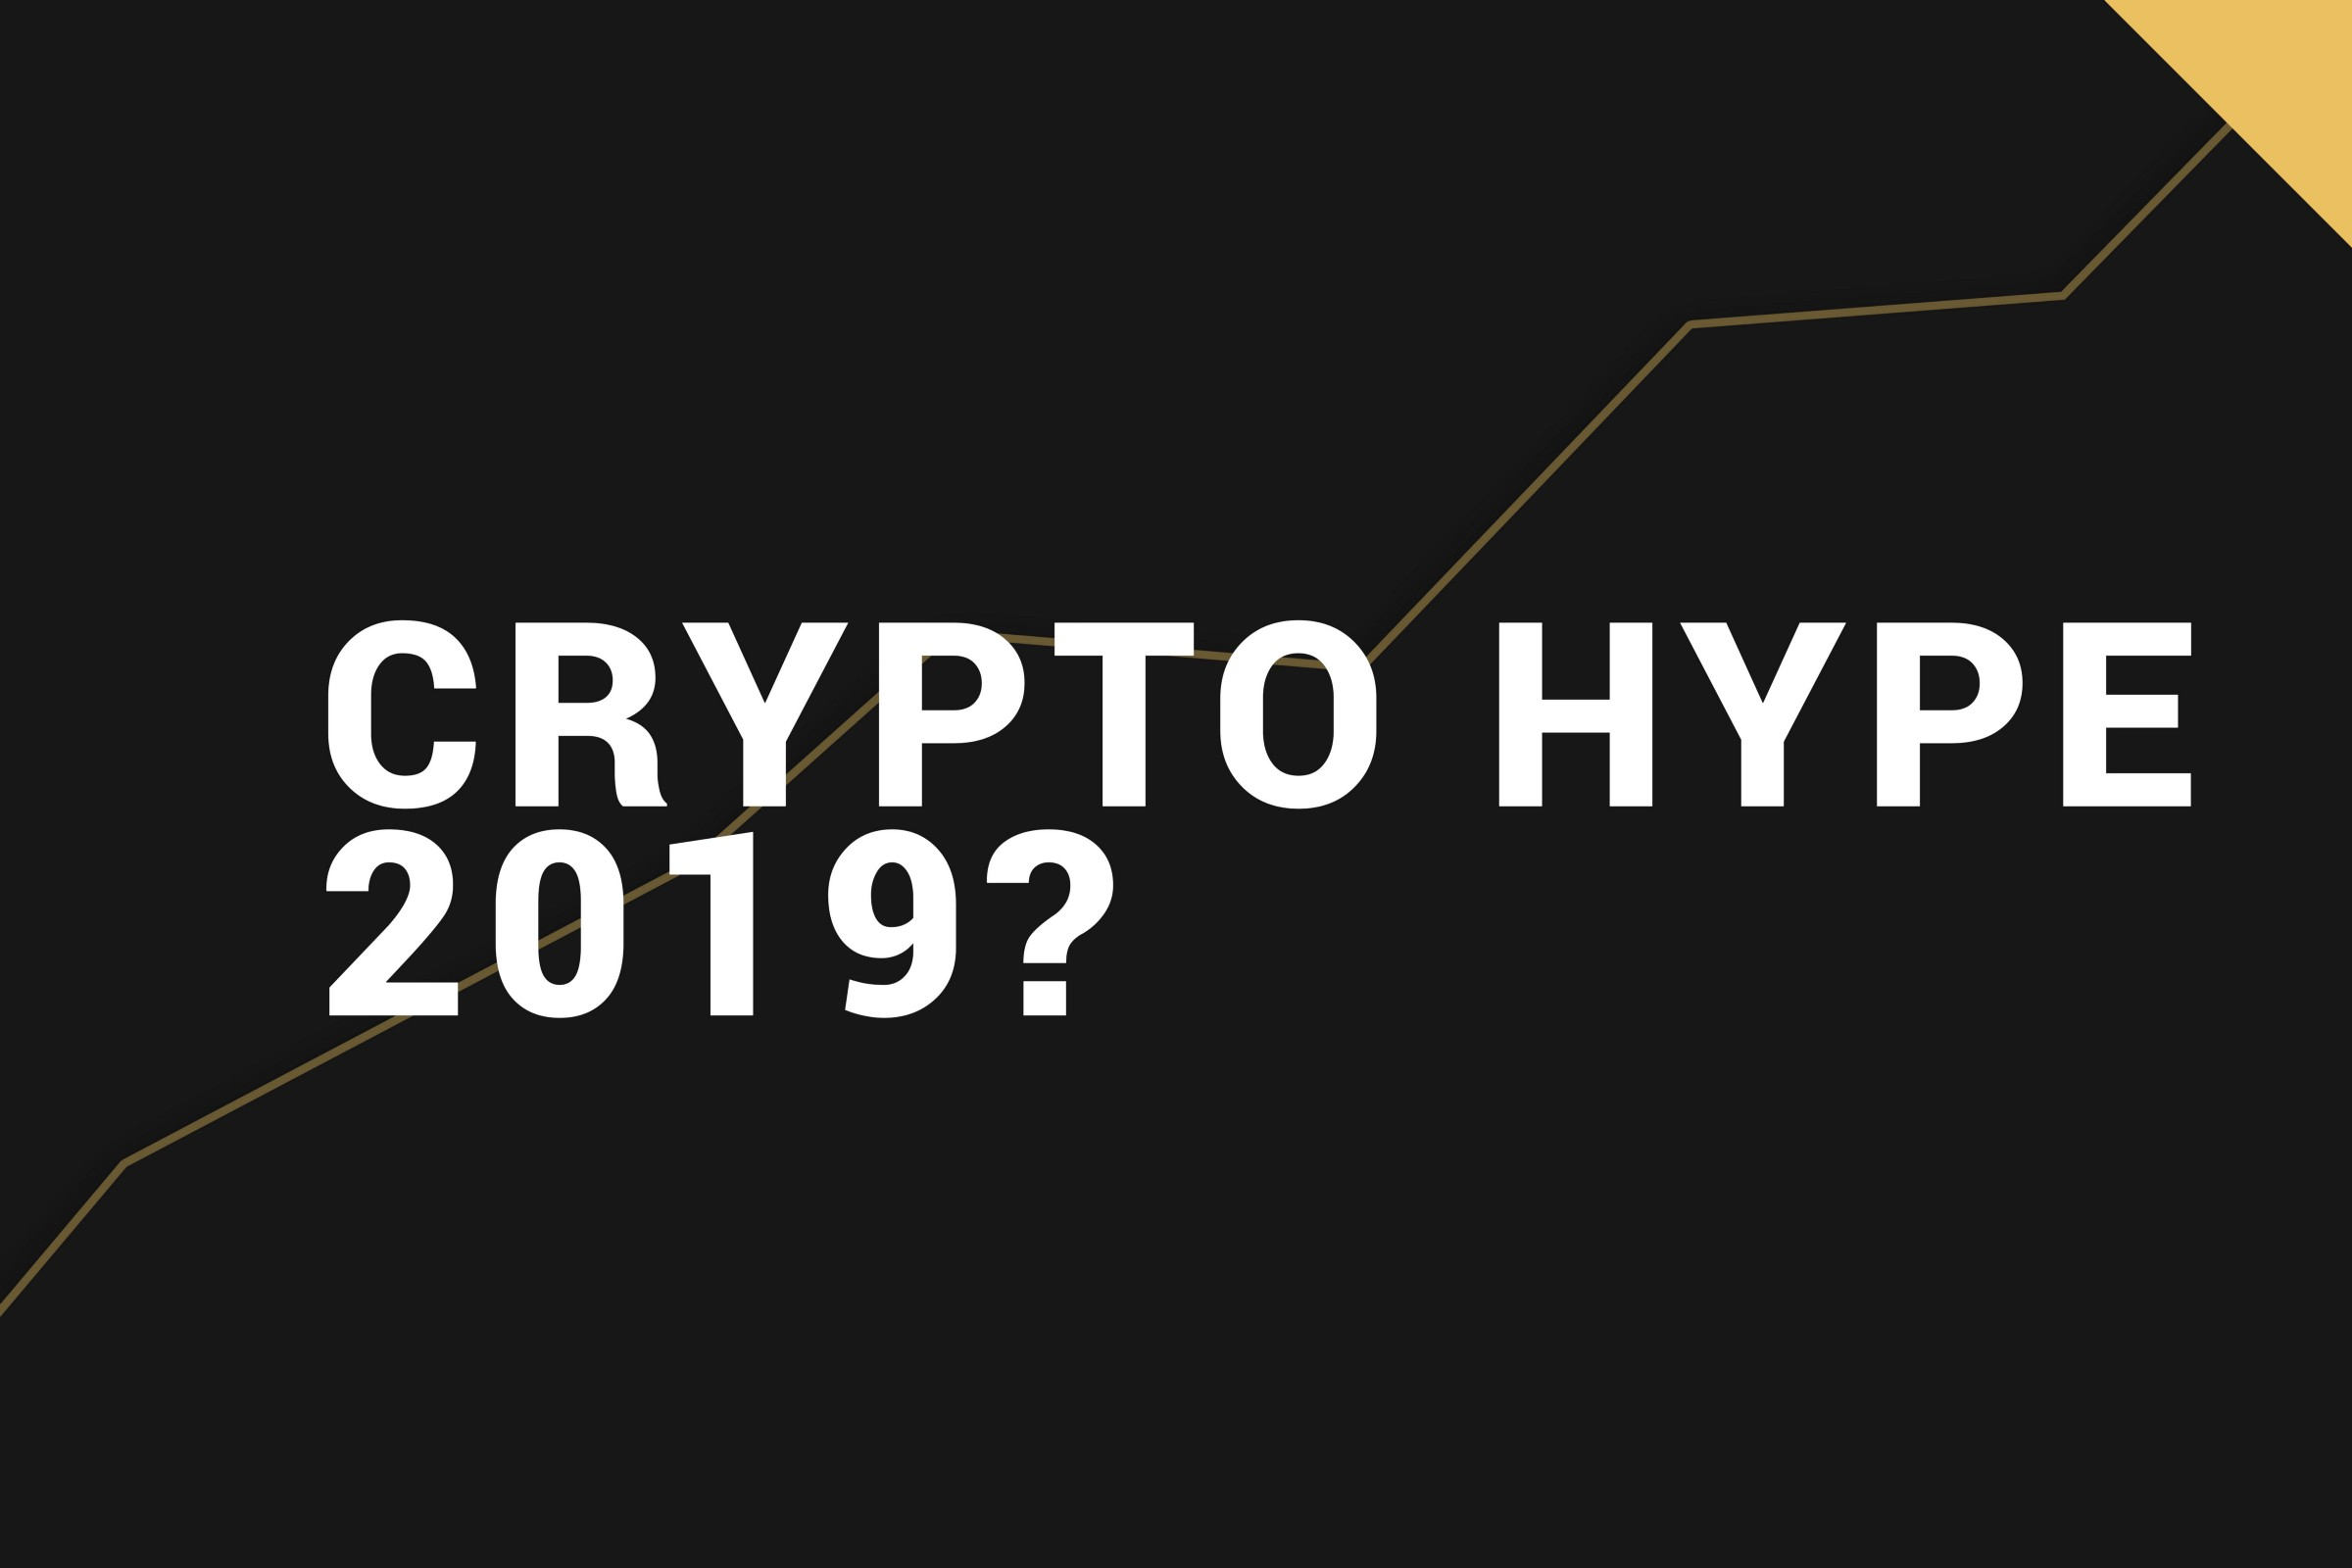 /crystal-ball-3000-will-the-next-crypto-hype-start-in-2019-d005cb743121 feature image